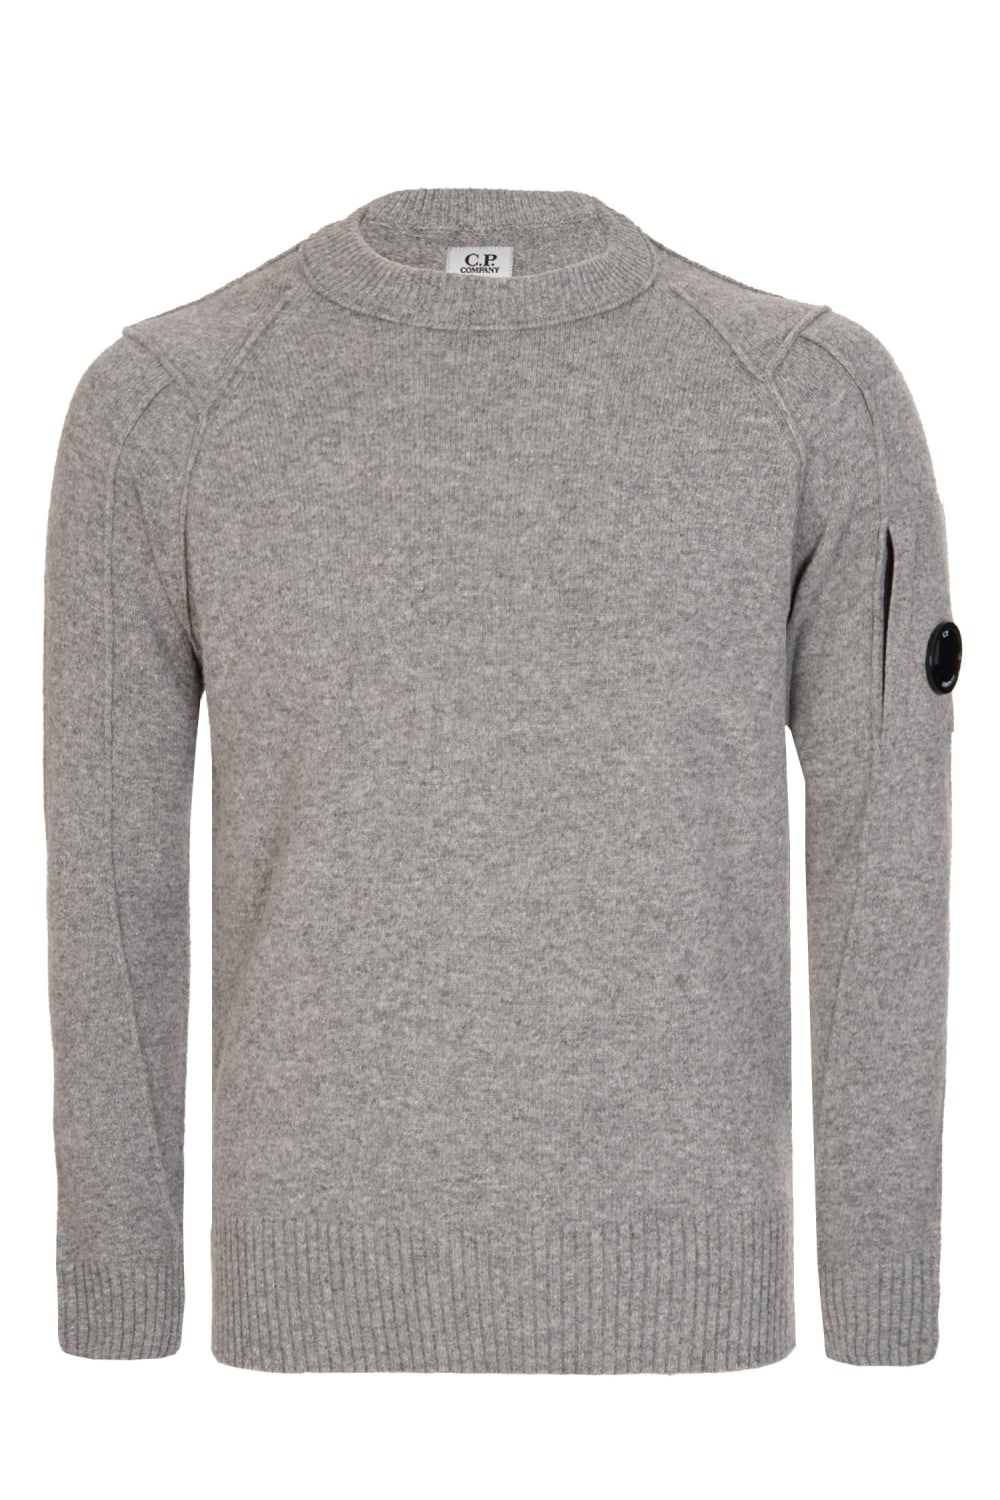 C.P Company Wool Blend Crew Neck Knitted Jumper Grey b3bd54bf7